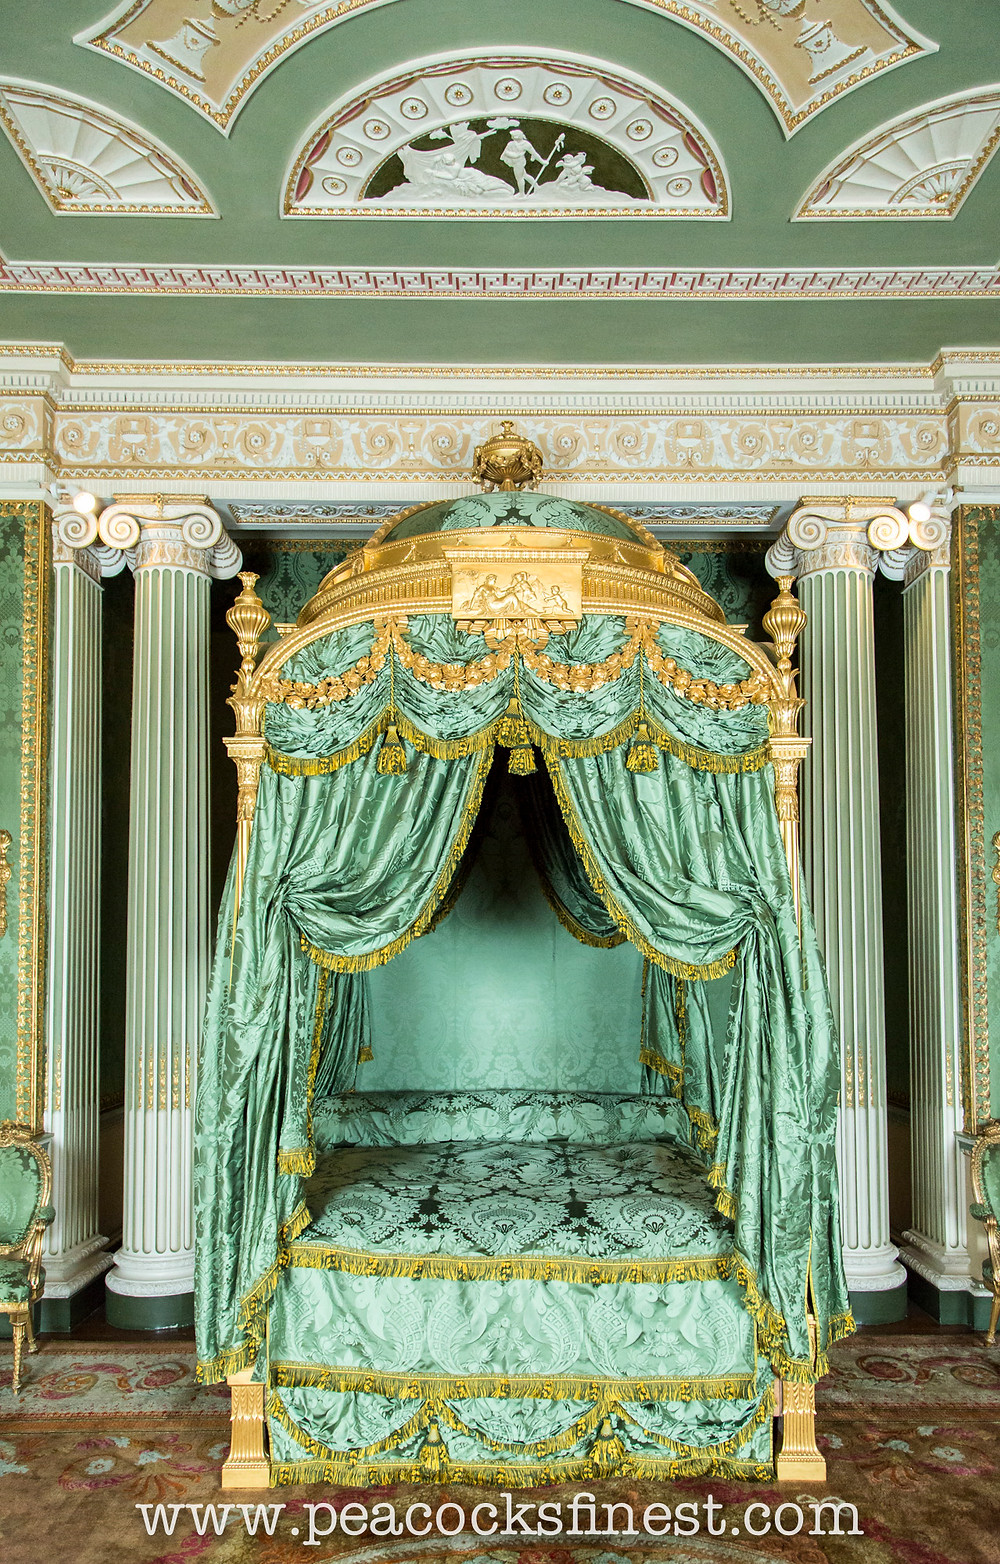 Harewood House, the State Bedroom